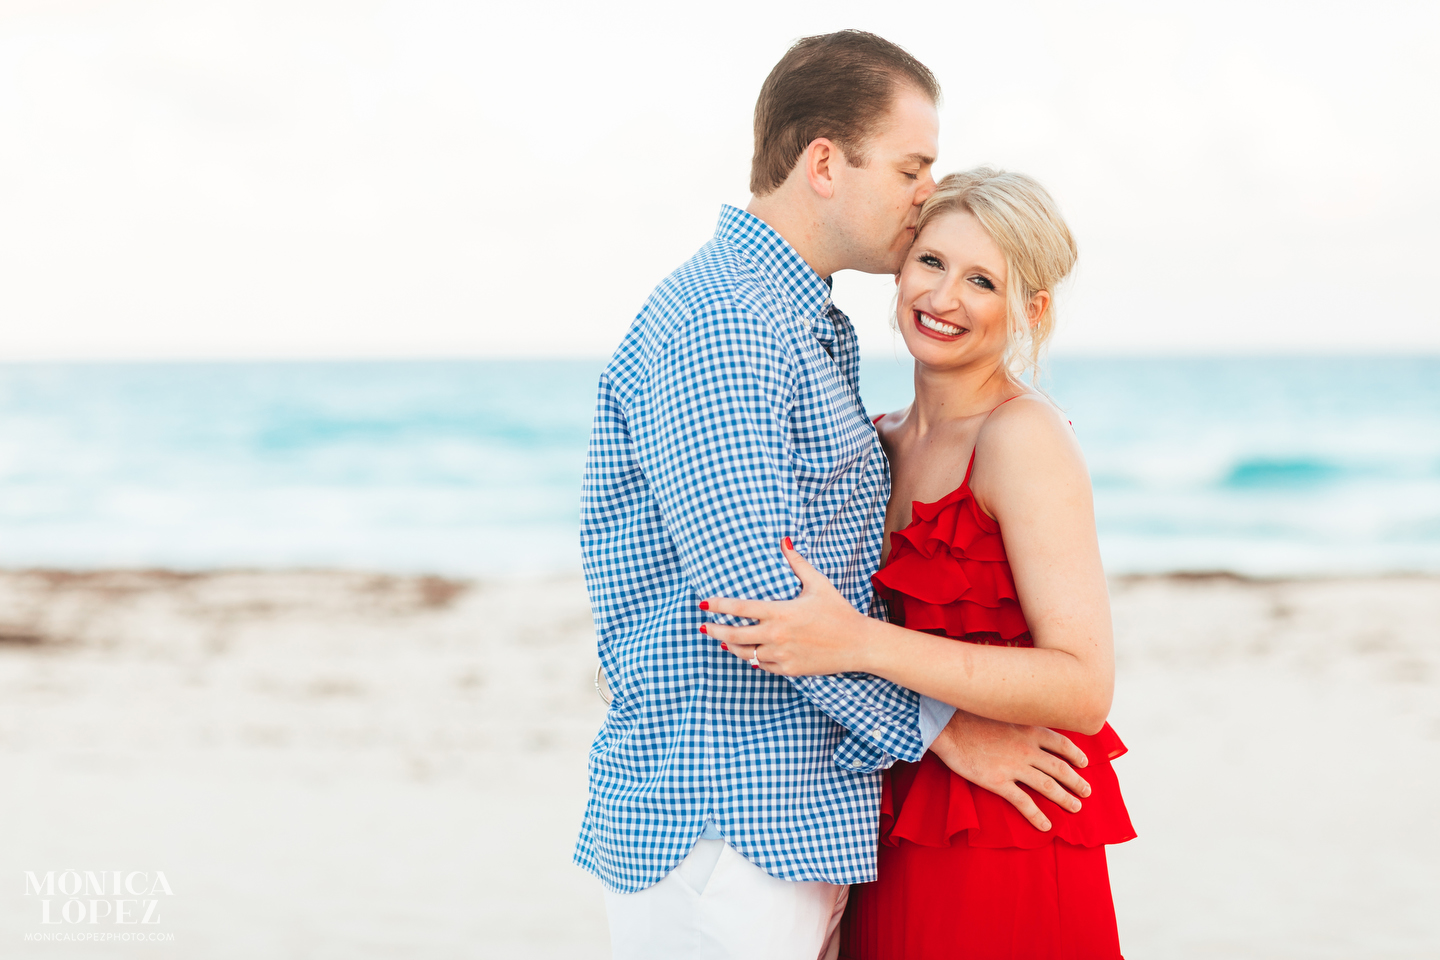 Ritz Carlton Cancun Engagement Photographer - Monica Lopez Pohotography